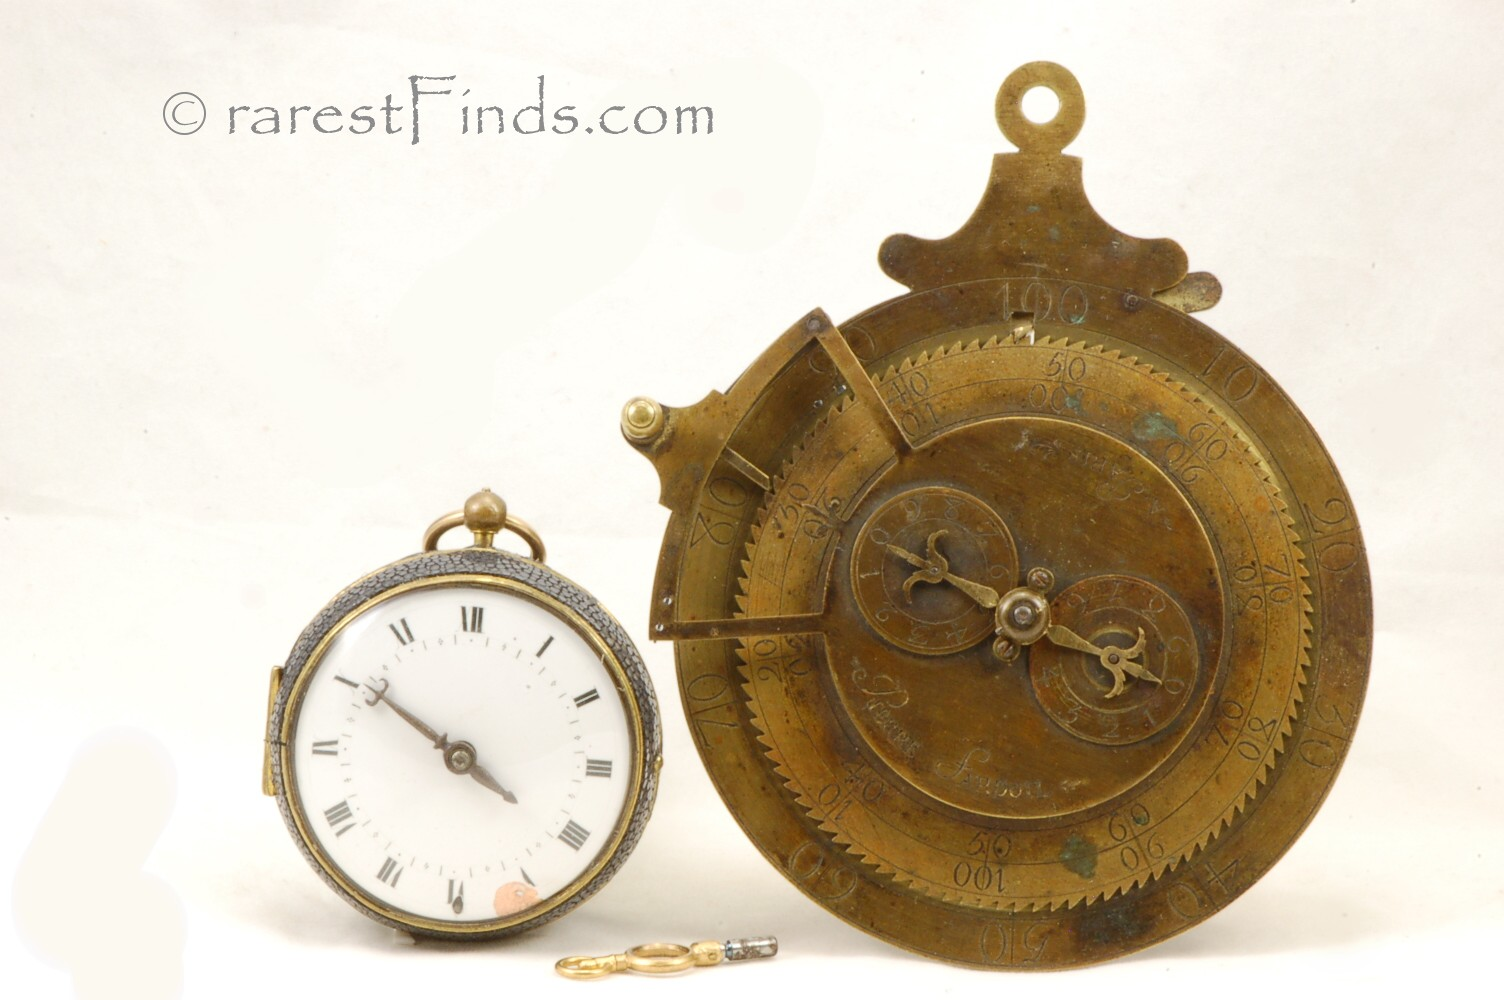 Pierre-Fardoil-Calculator-and-Pocket-Watch-c.1700